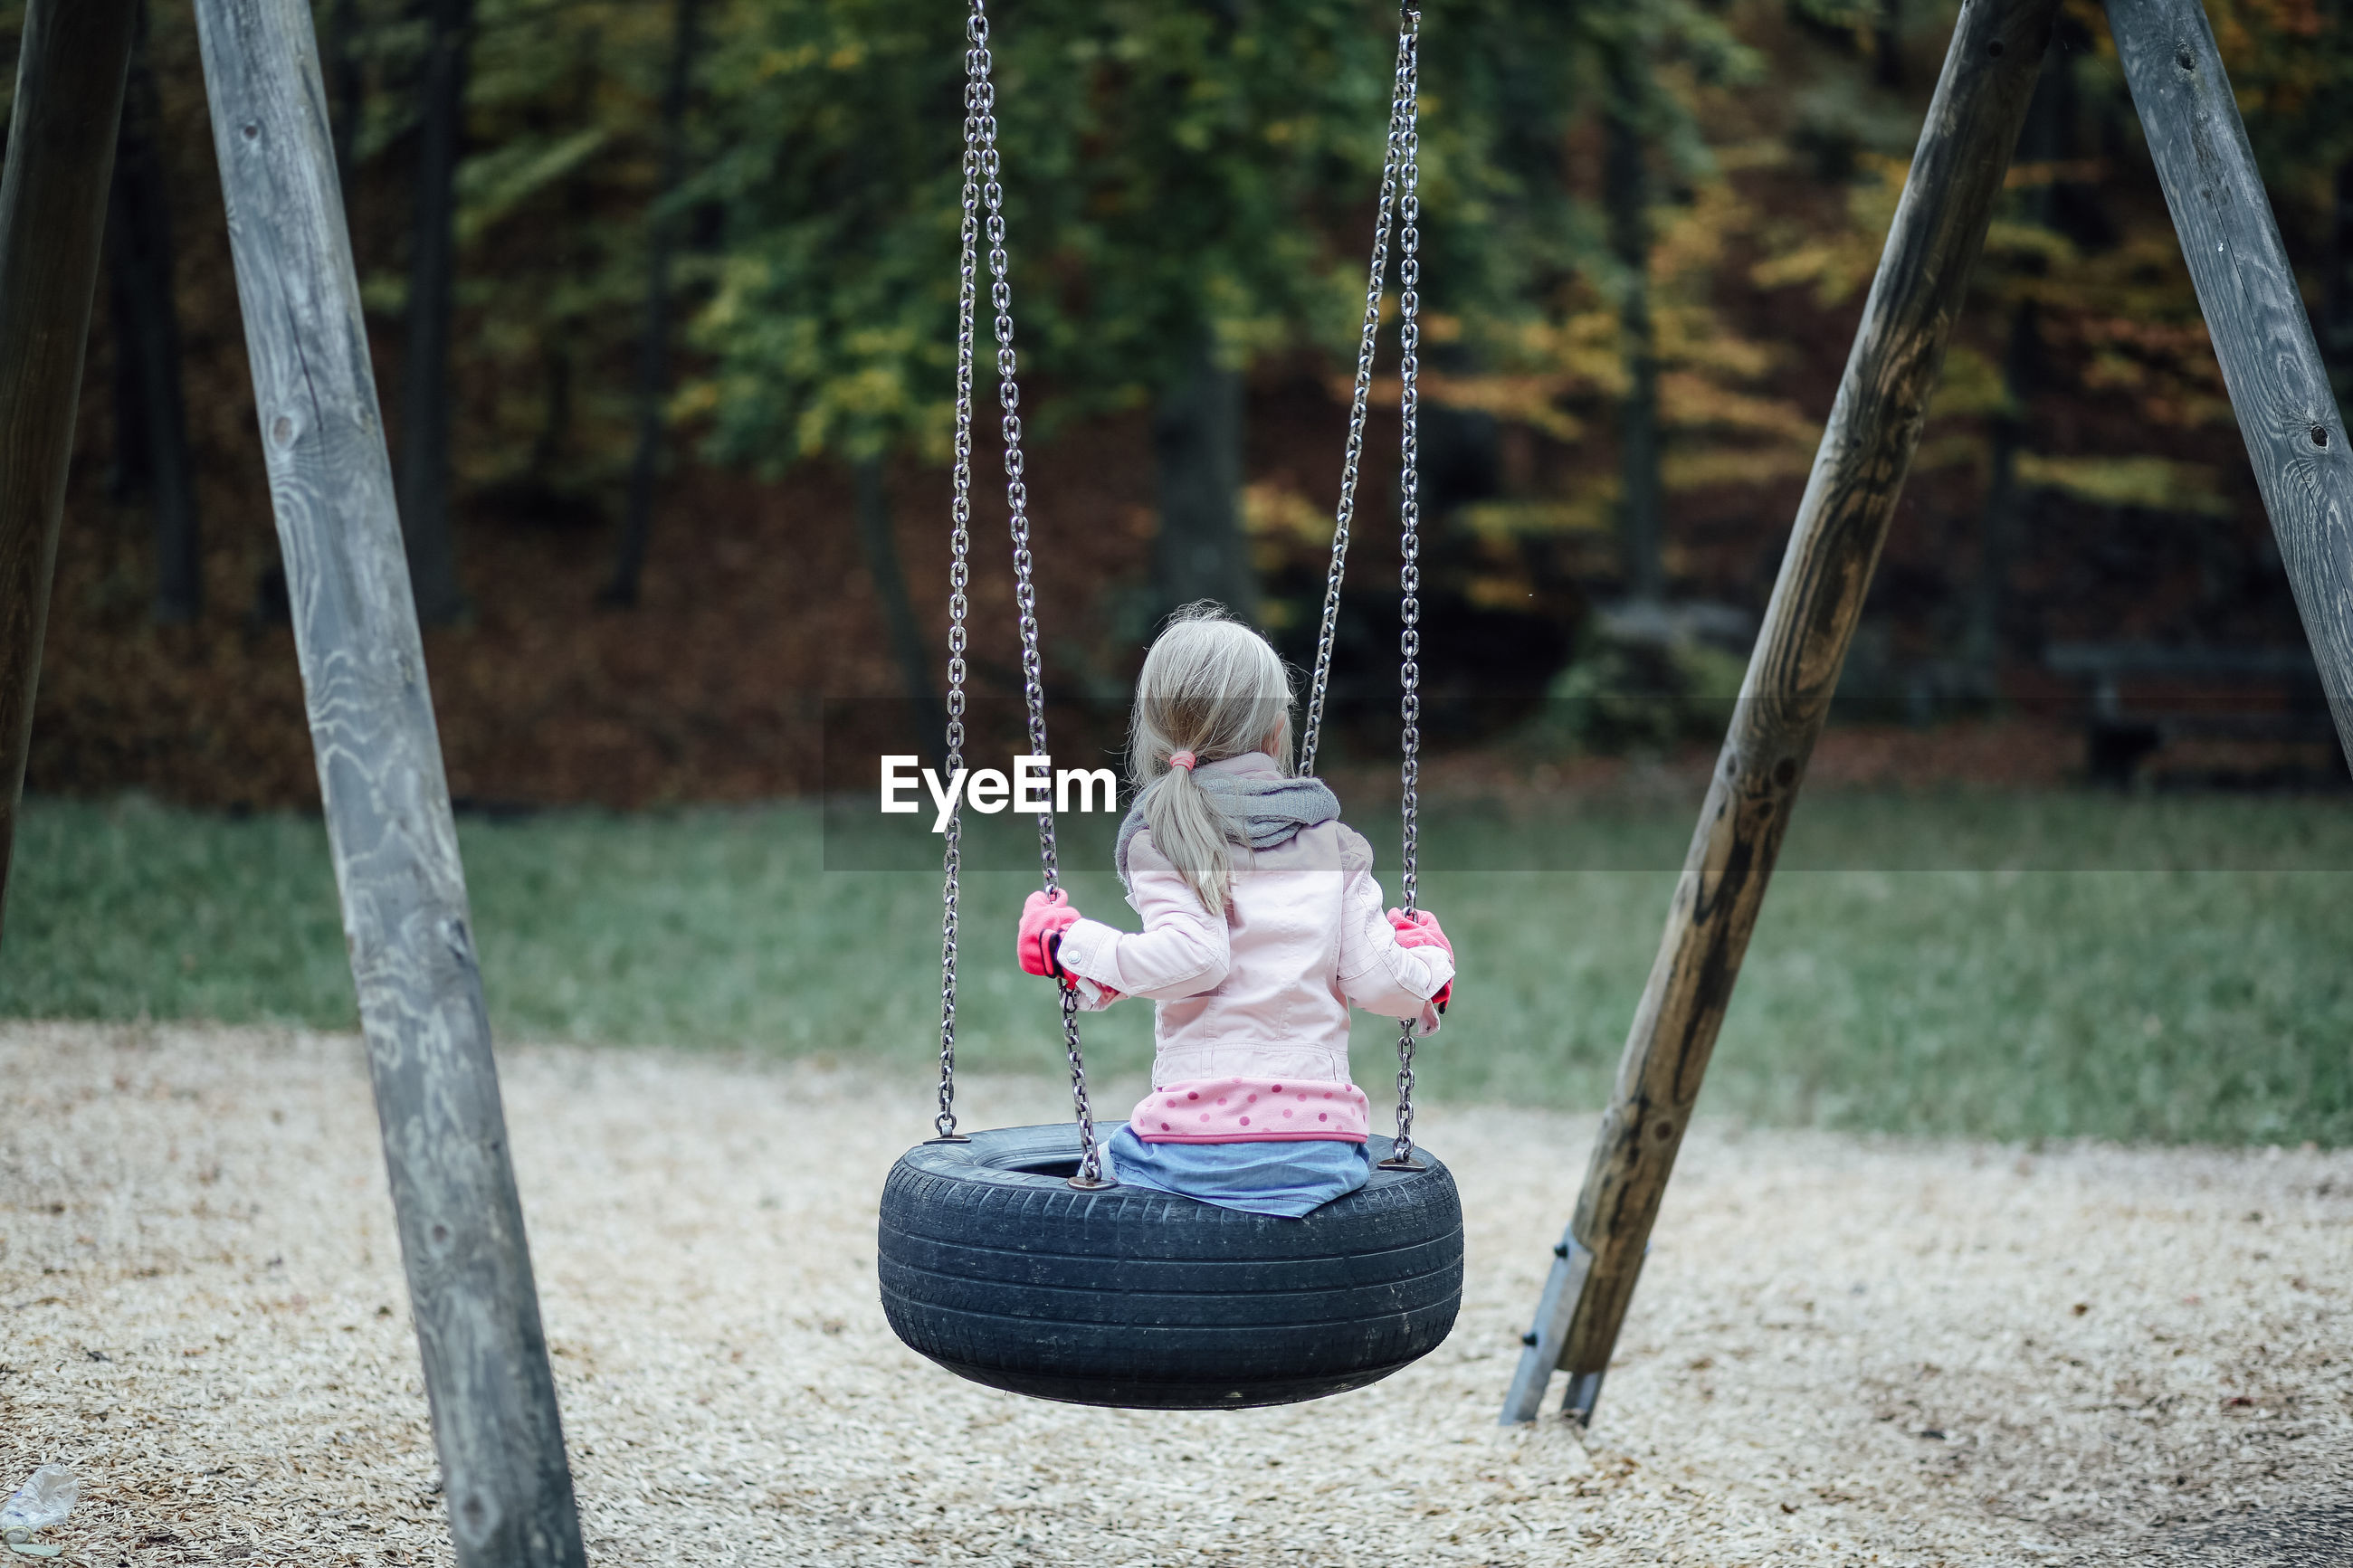 Rear view of girl sitting on tire swing at playground